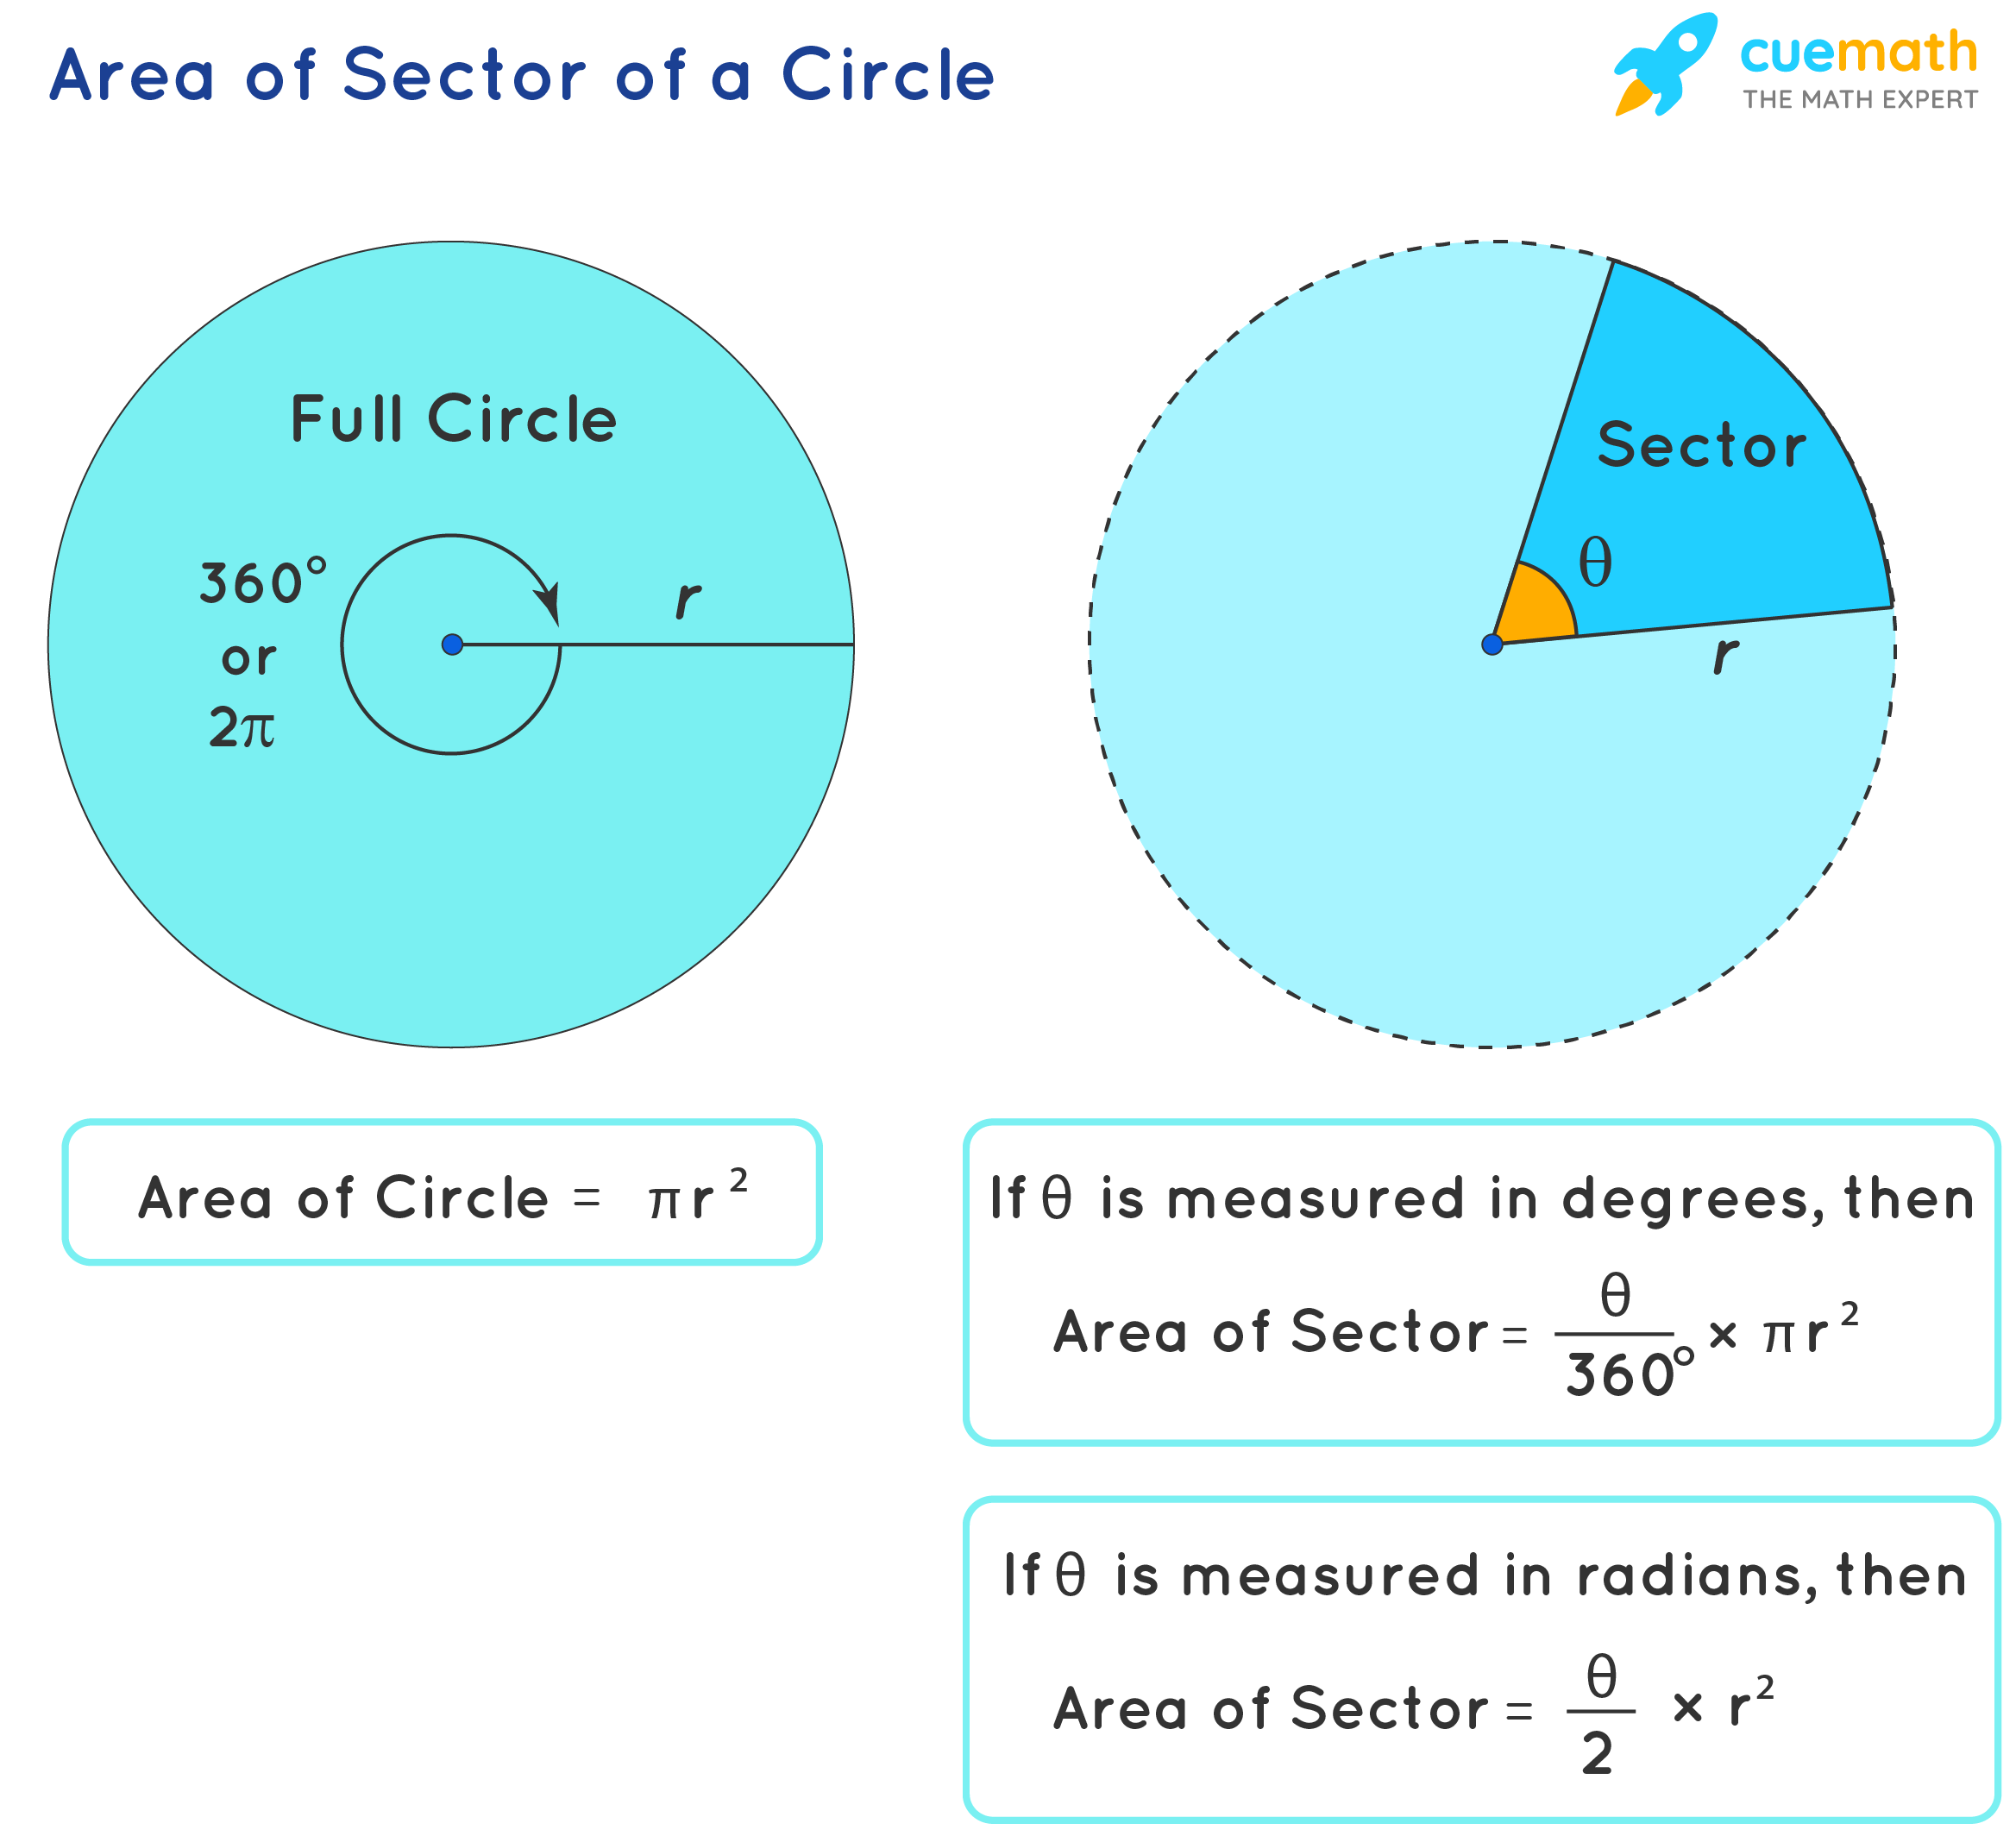 Sector of a circle image showing Area of a sector formulas